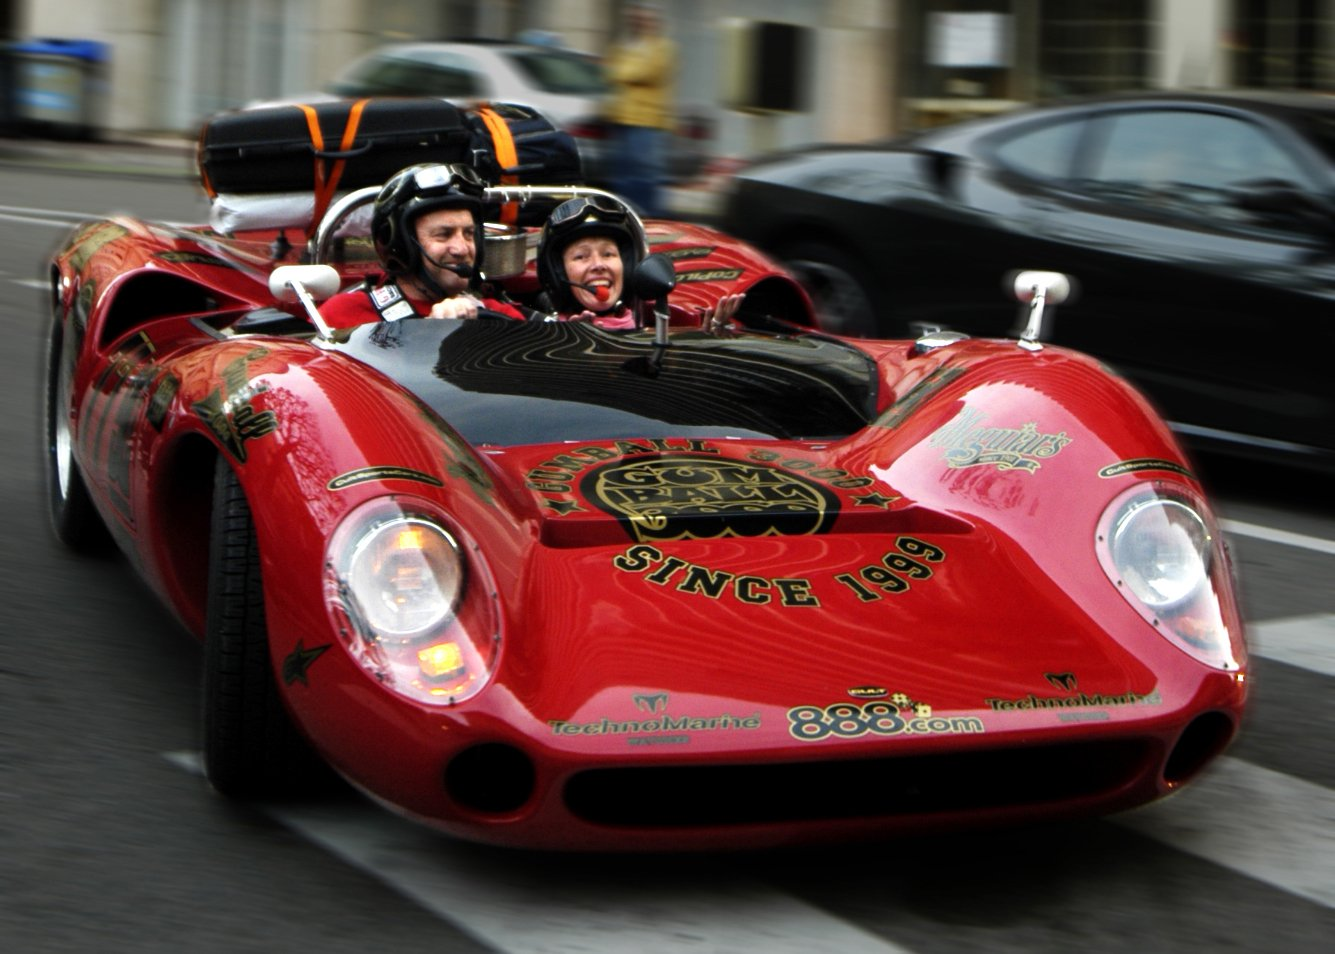 Driving from London to Monaco in a 1966 Lola T70.  This was the 2005 Gumball Rally.